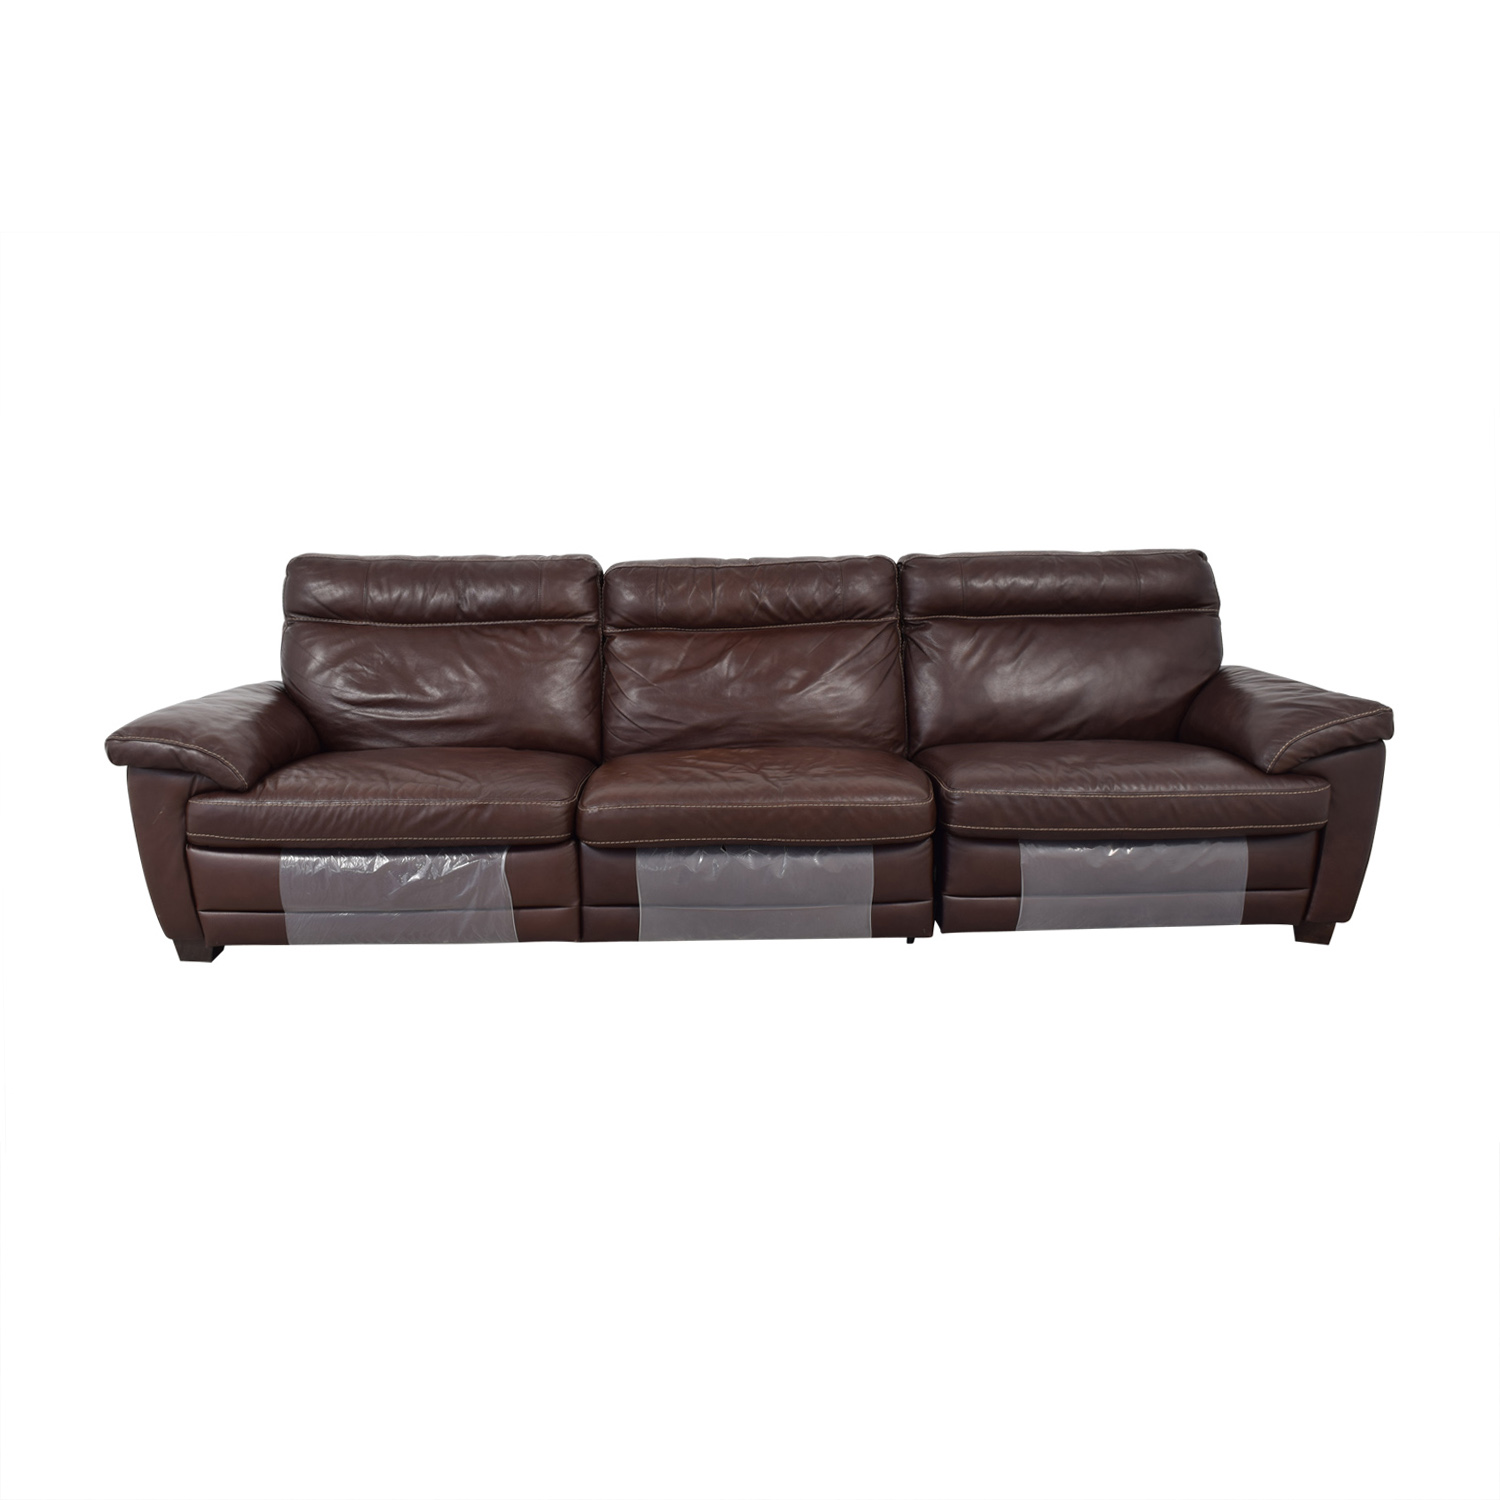 Natuzzi Natuzzi Dark Brown Power Reclining Sectional Sofa price